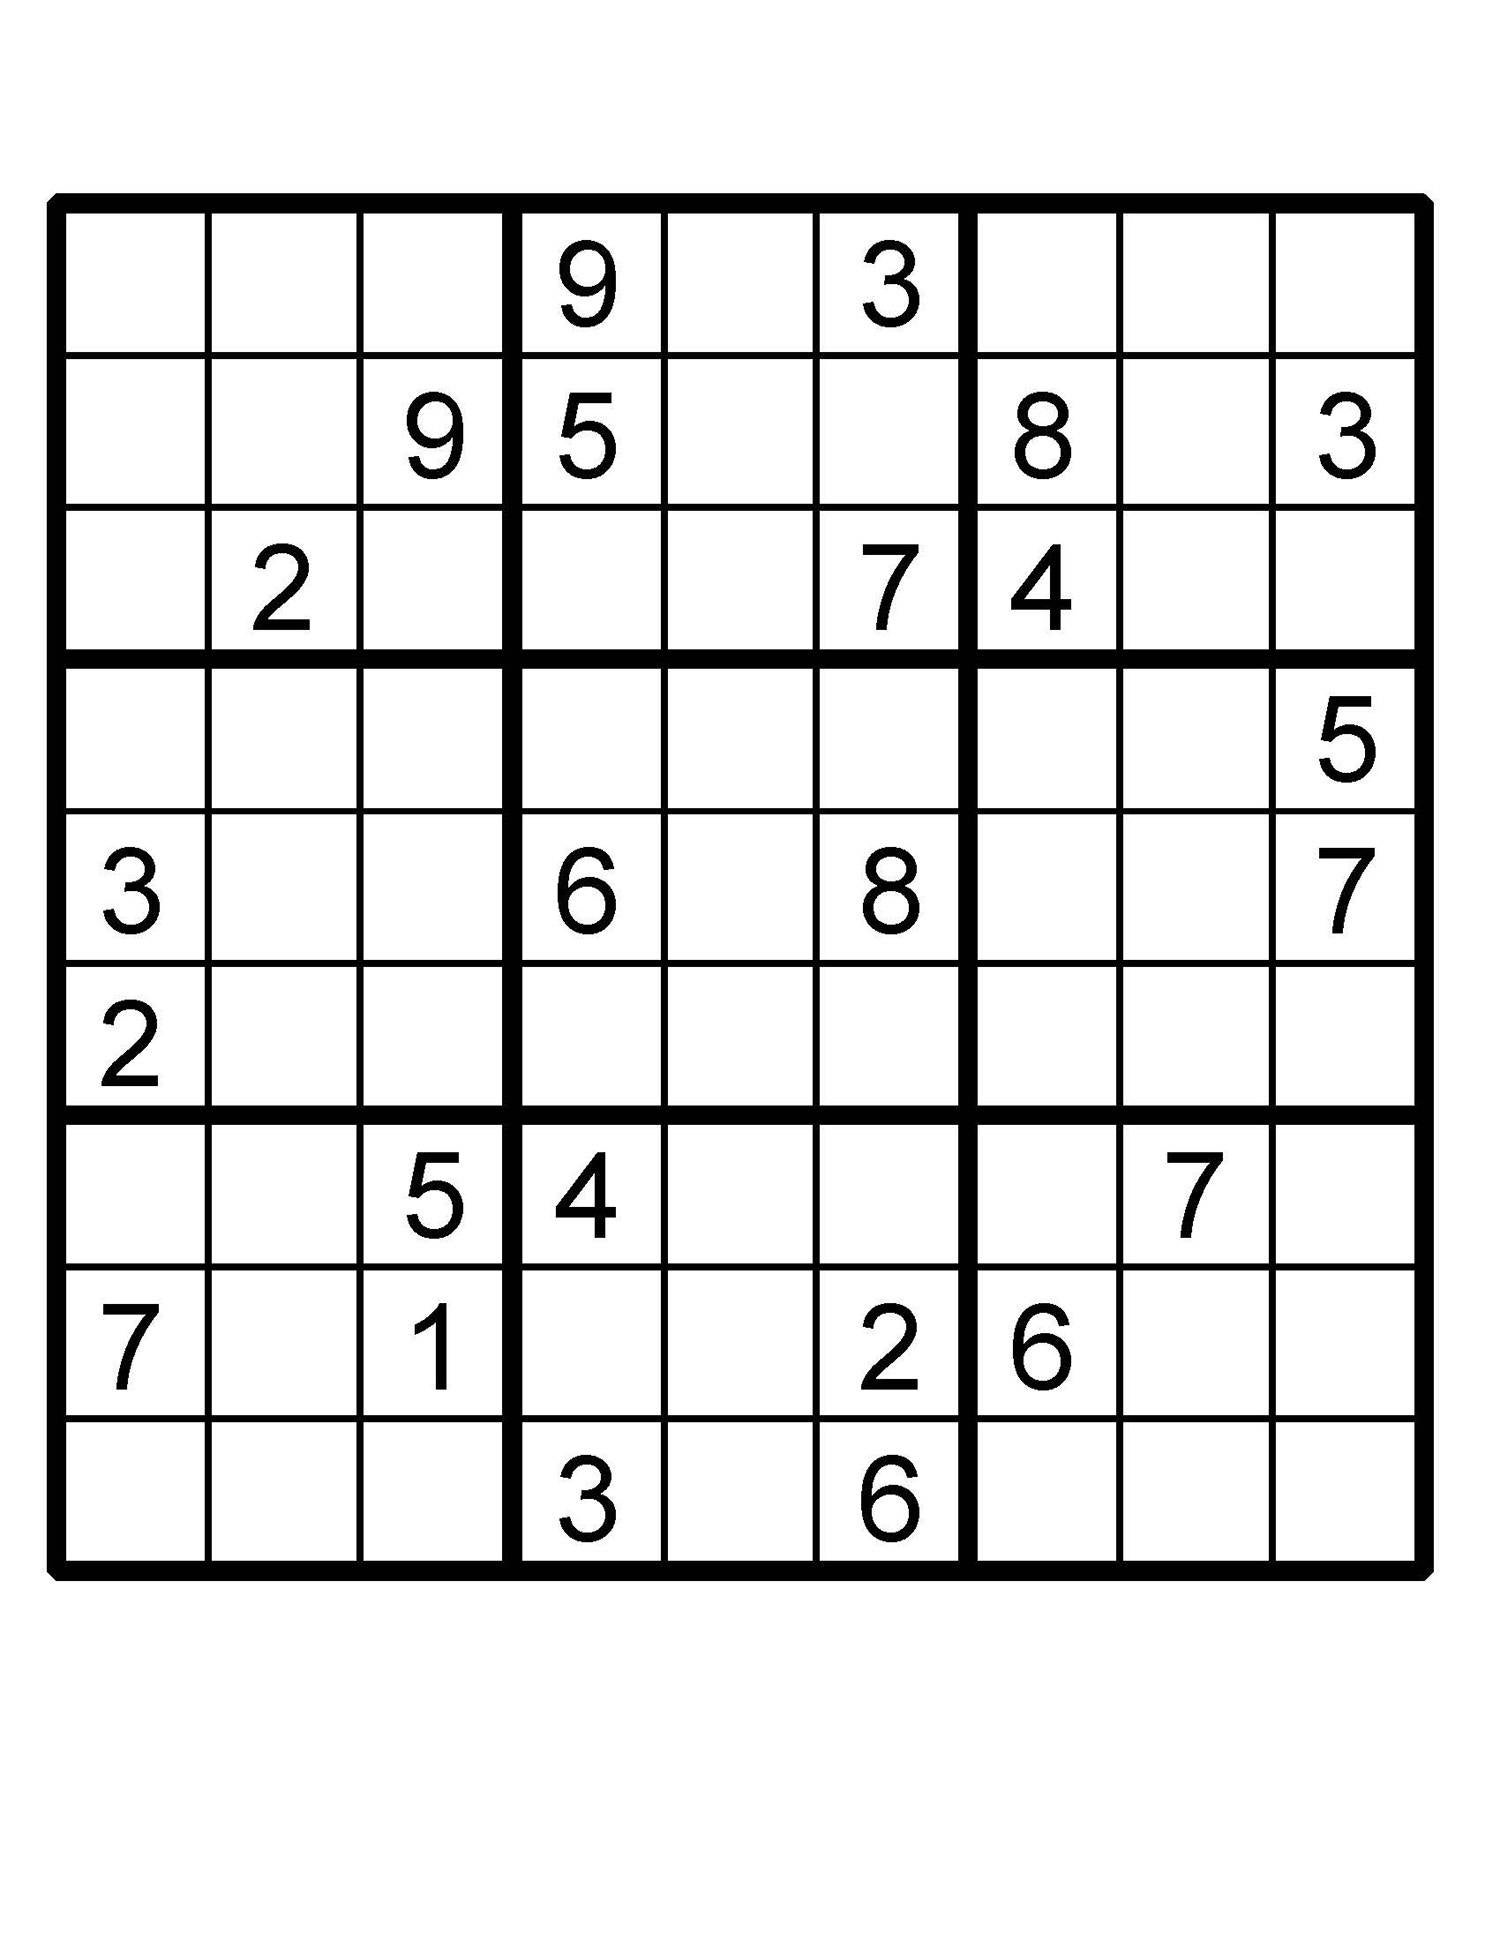 photograph regarding Multi Sudoku Printable named Sudoku Printable Puzzle